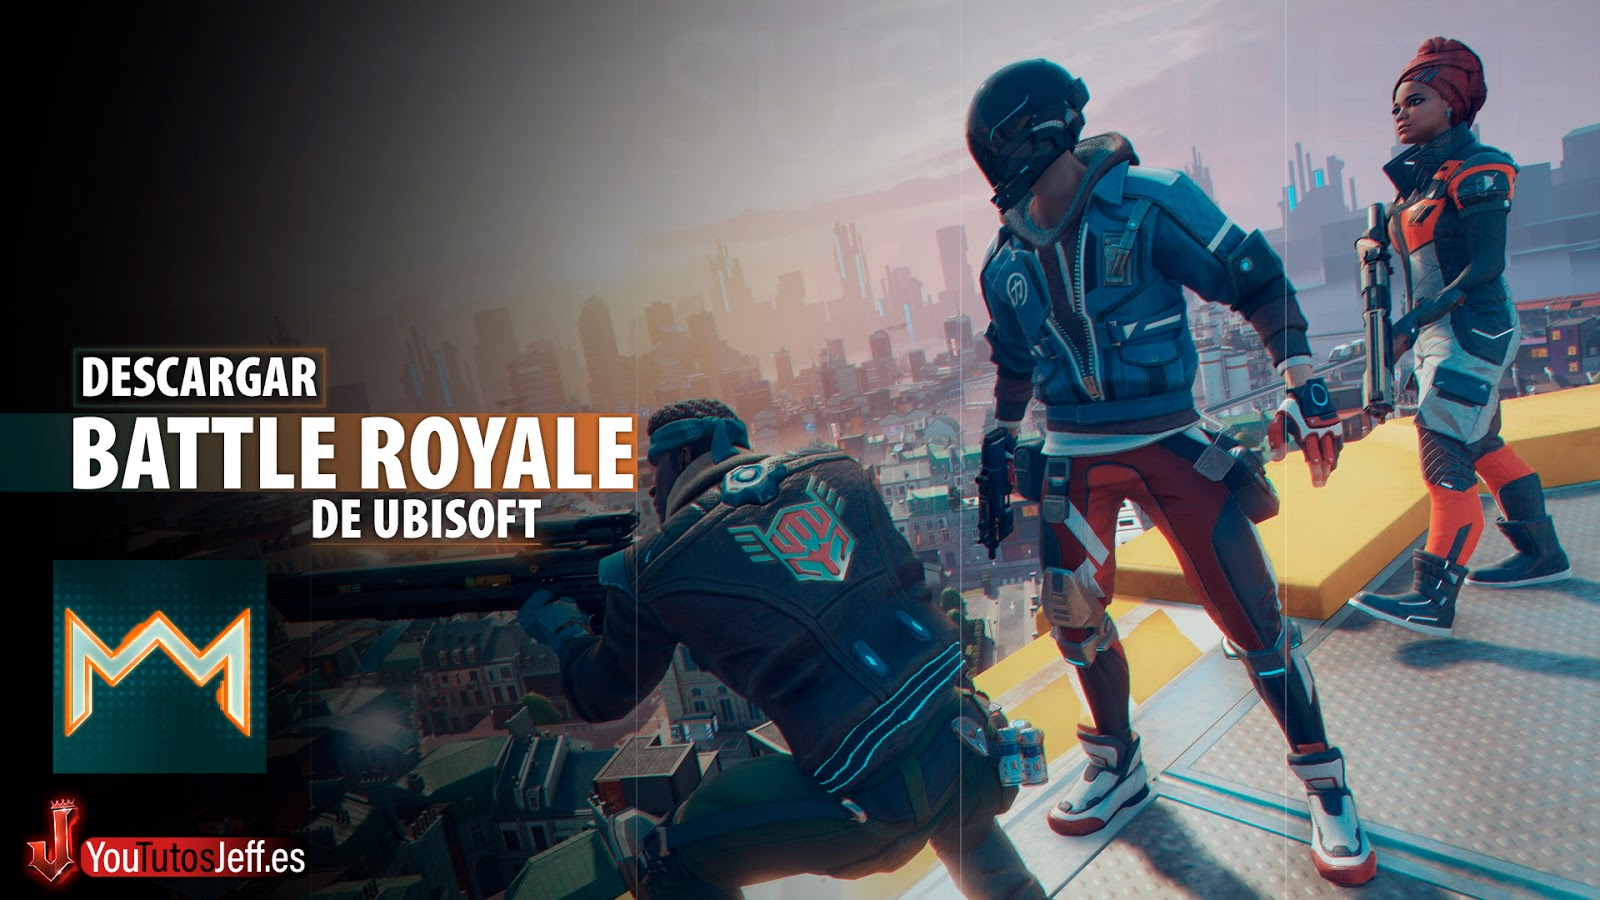 Battle Royale de Ubisoft, Descargar Hyper Scape para PC Gratis